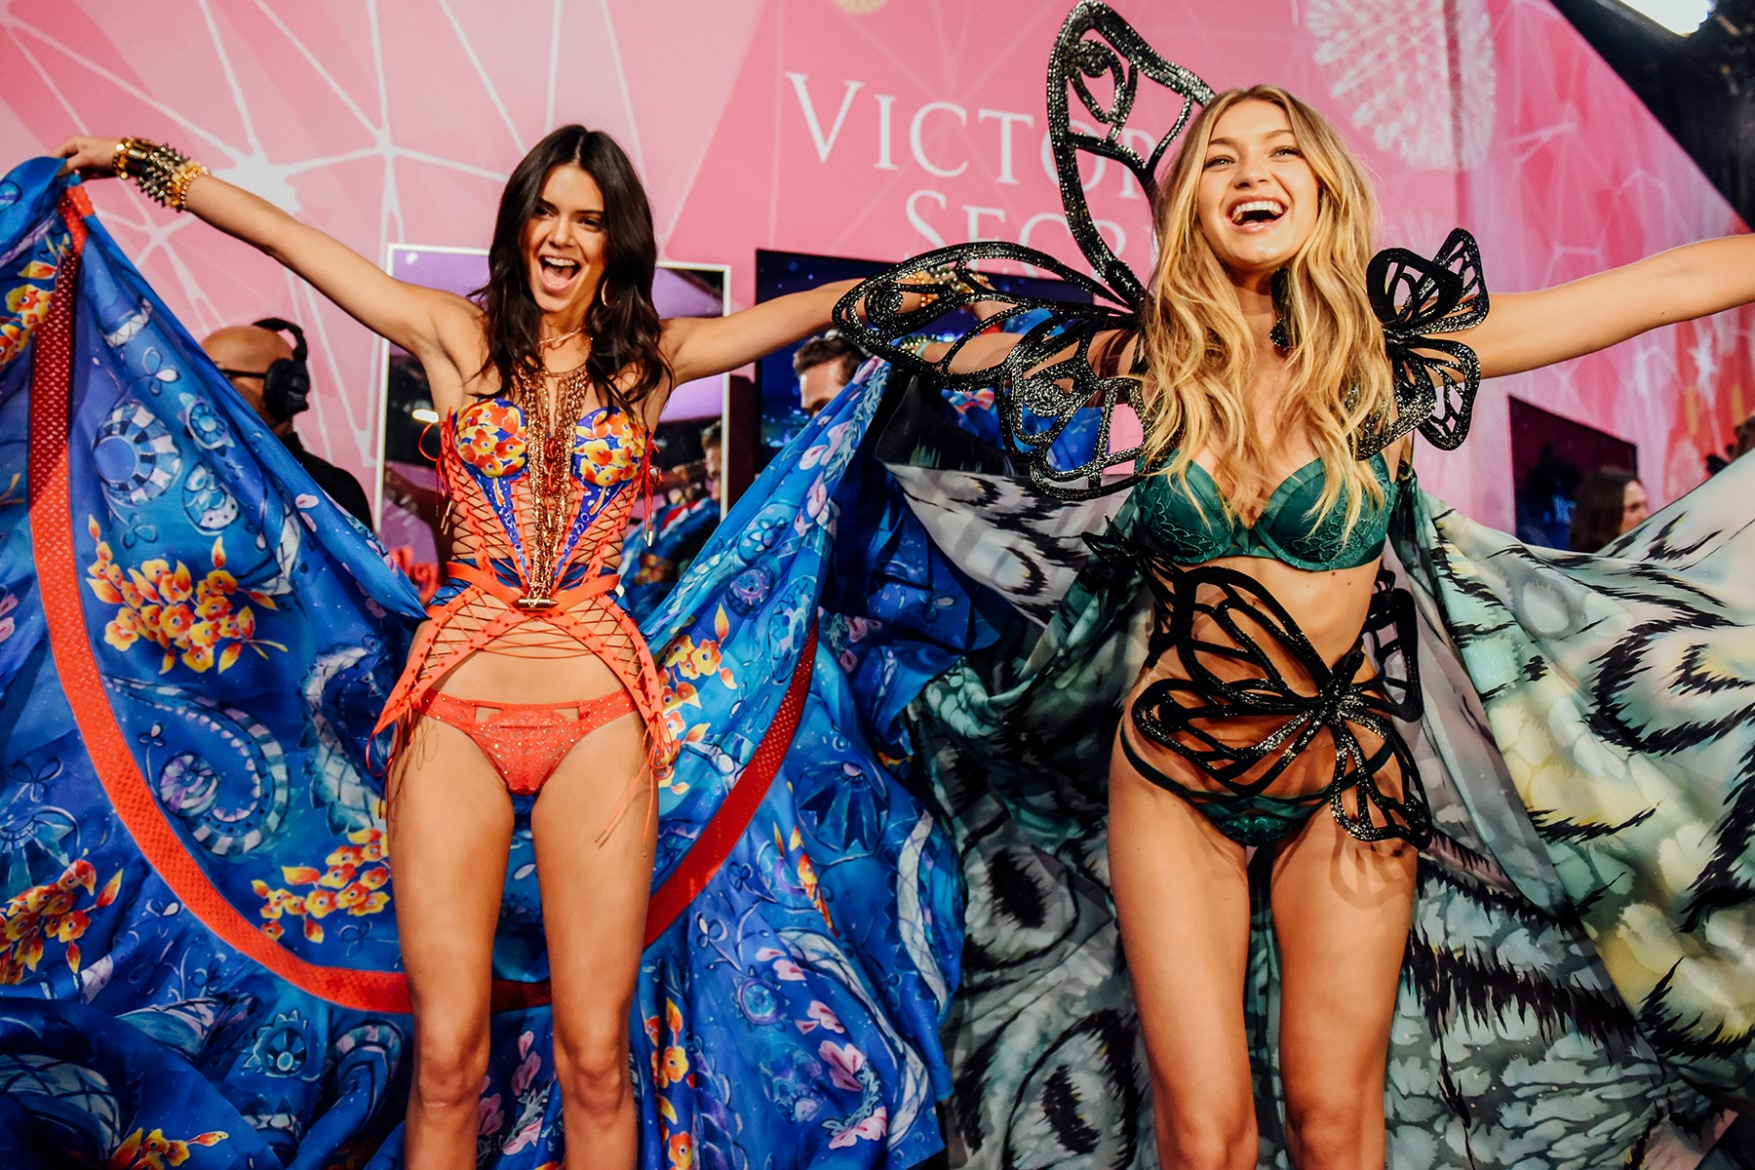 most-memorable-looks-past-victorias-secret-fashion-shows-1